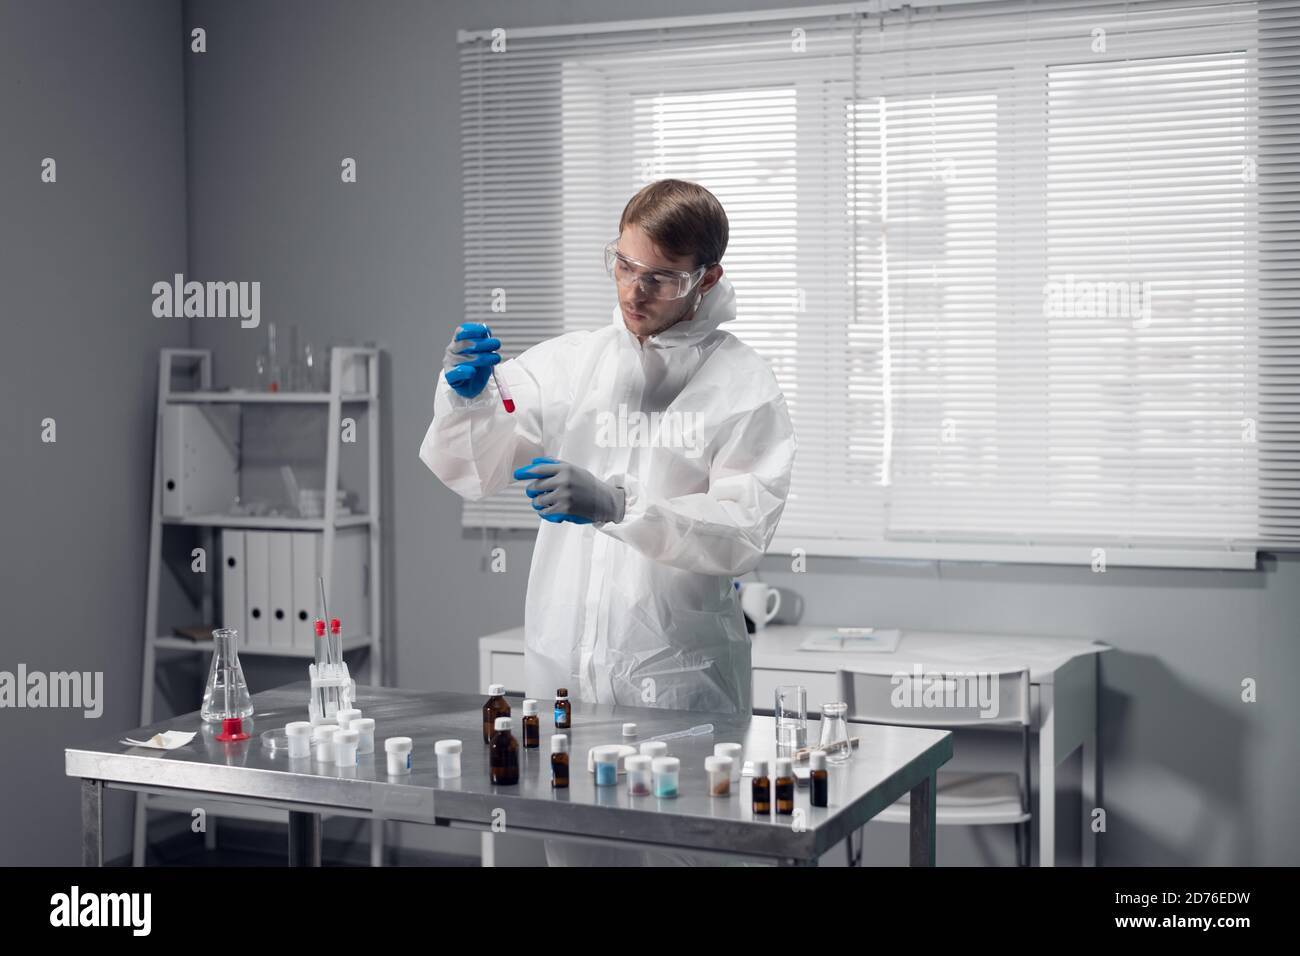 Male chemist carrying out a scientific research in his laboratory. Stock Photo